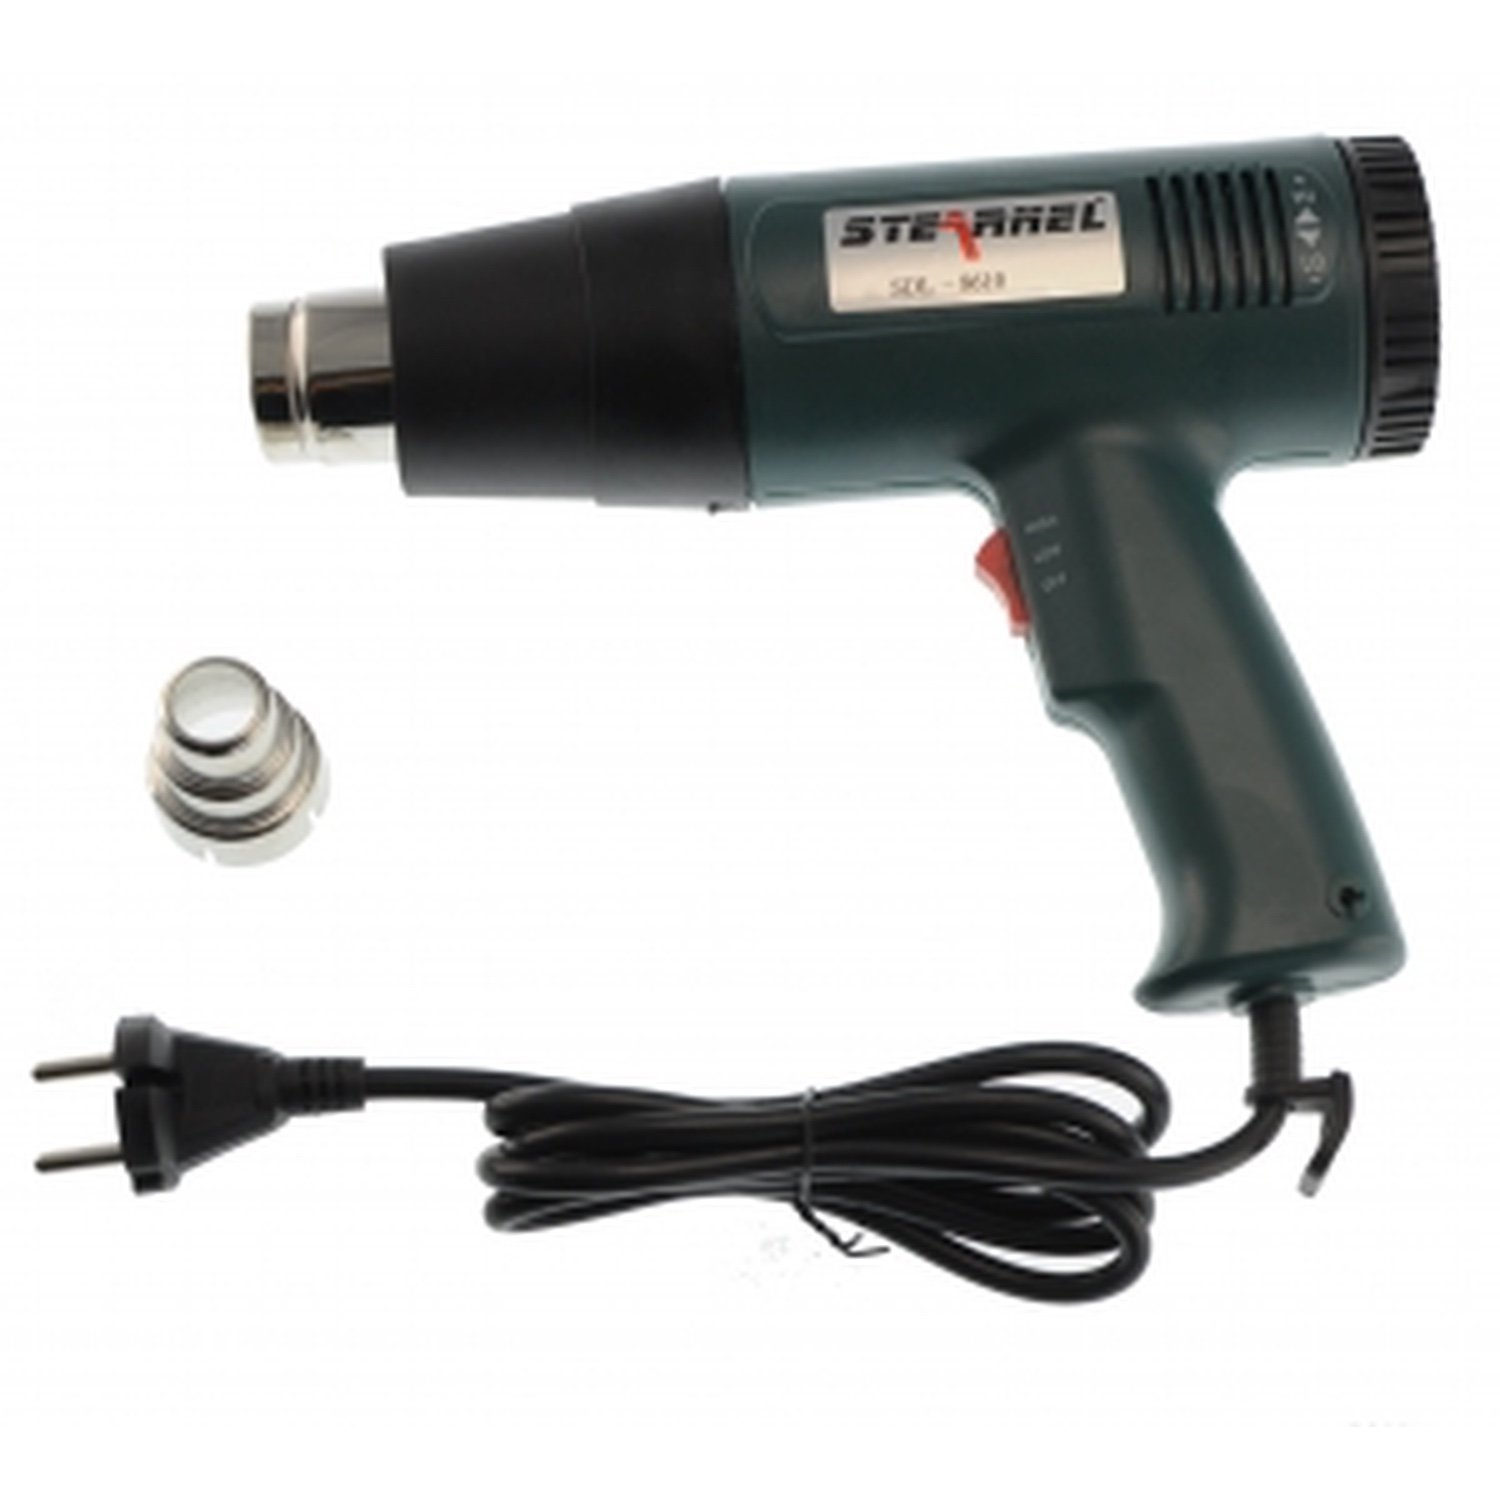 Gun Decapador Hot Air 1800w STEARNEL 8610